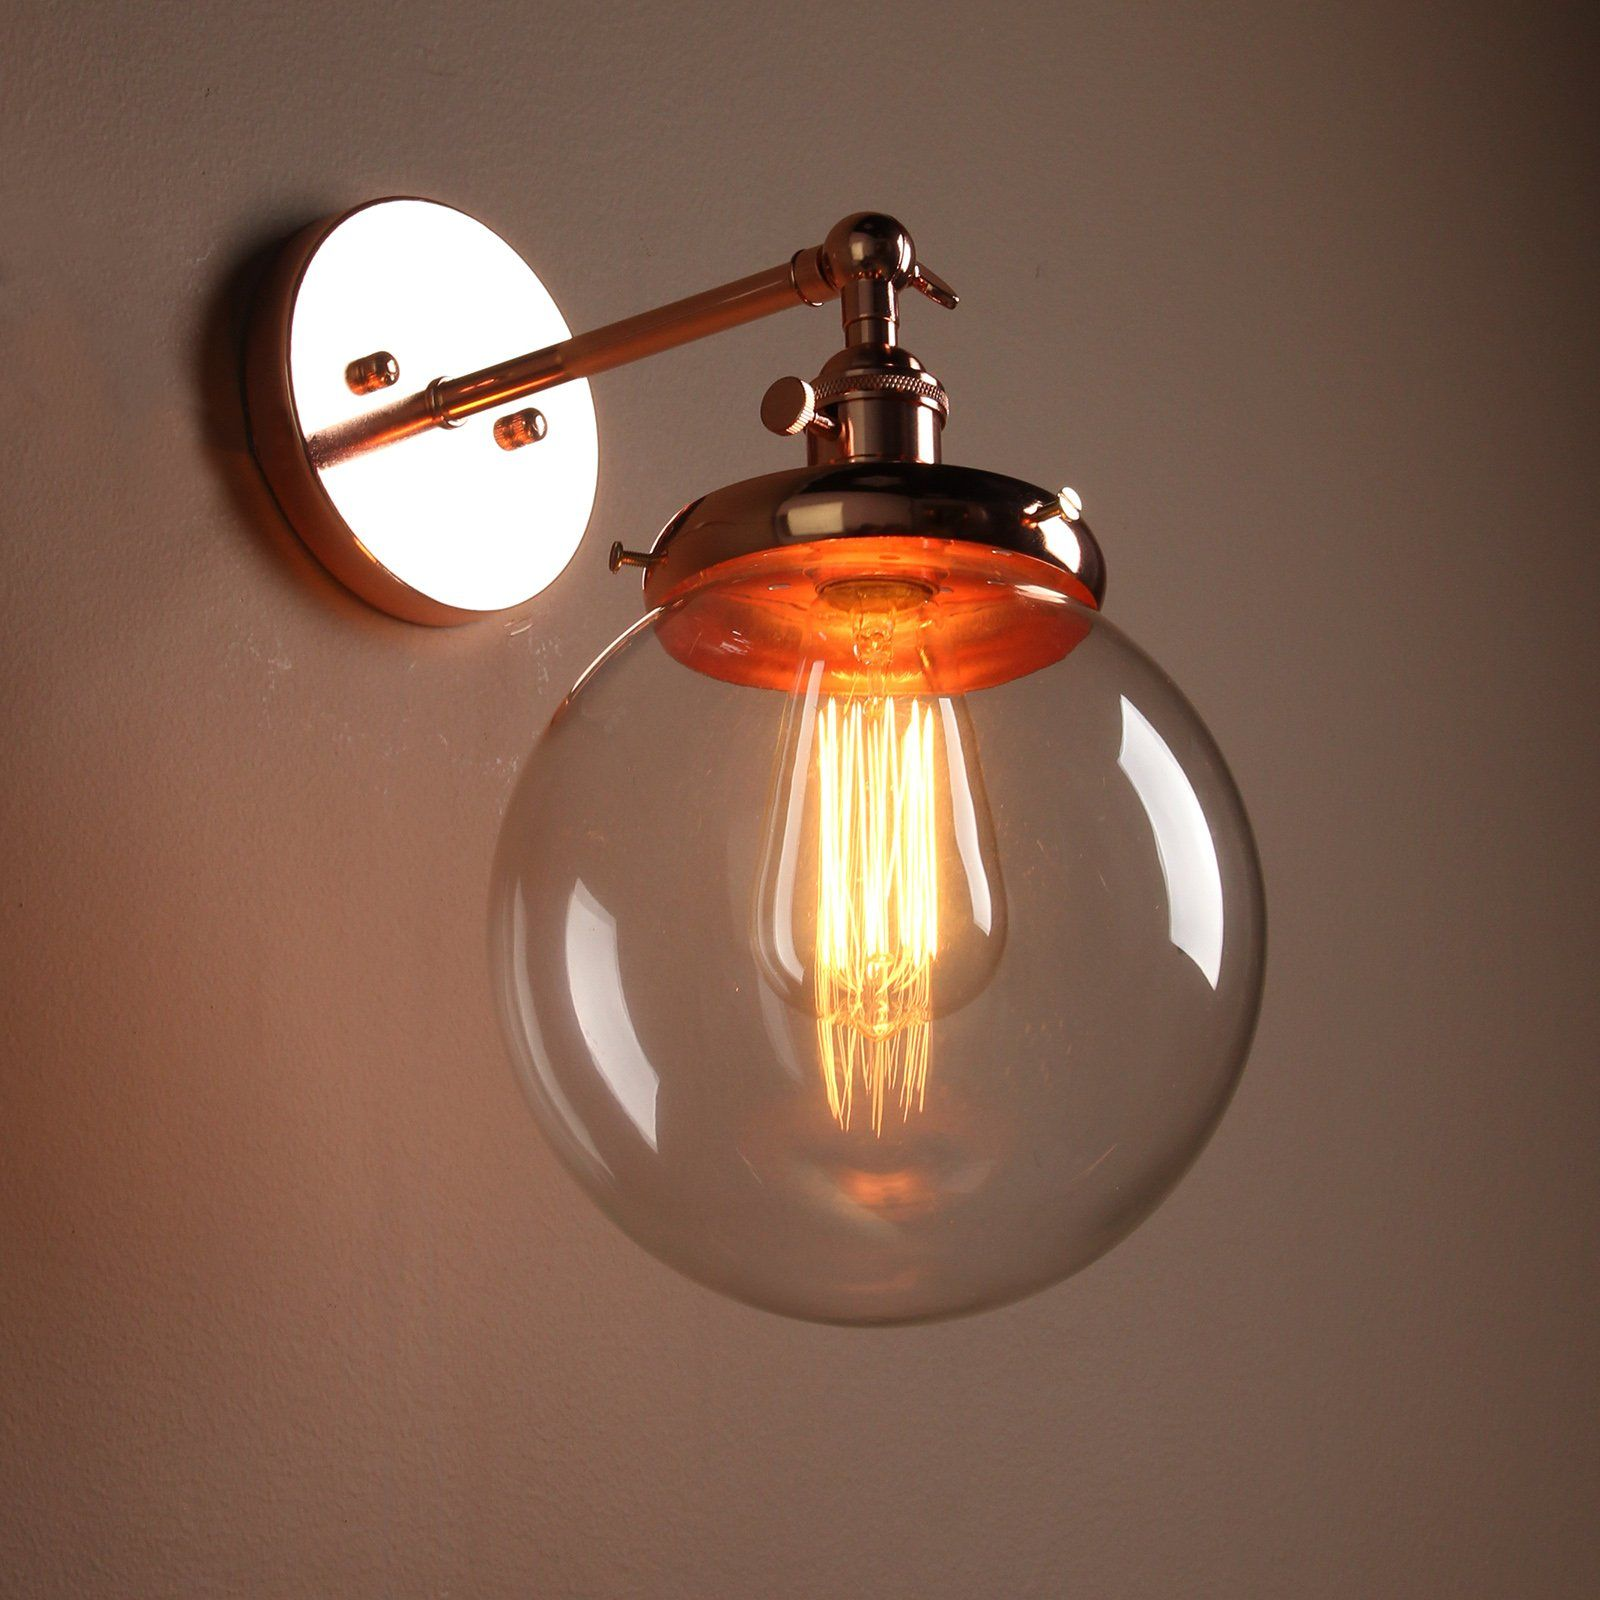 Buyee® Modern Vintage Industrial Edison Wall Sconce Glass